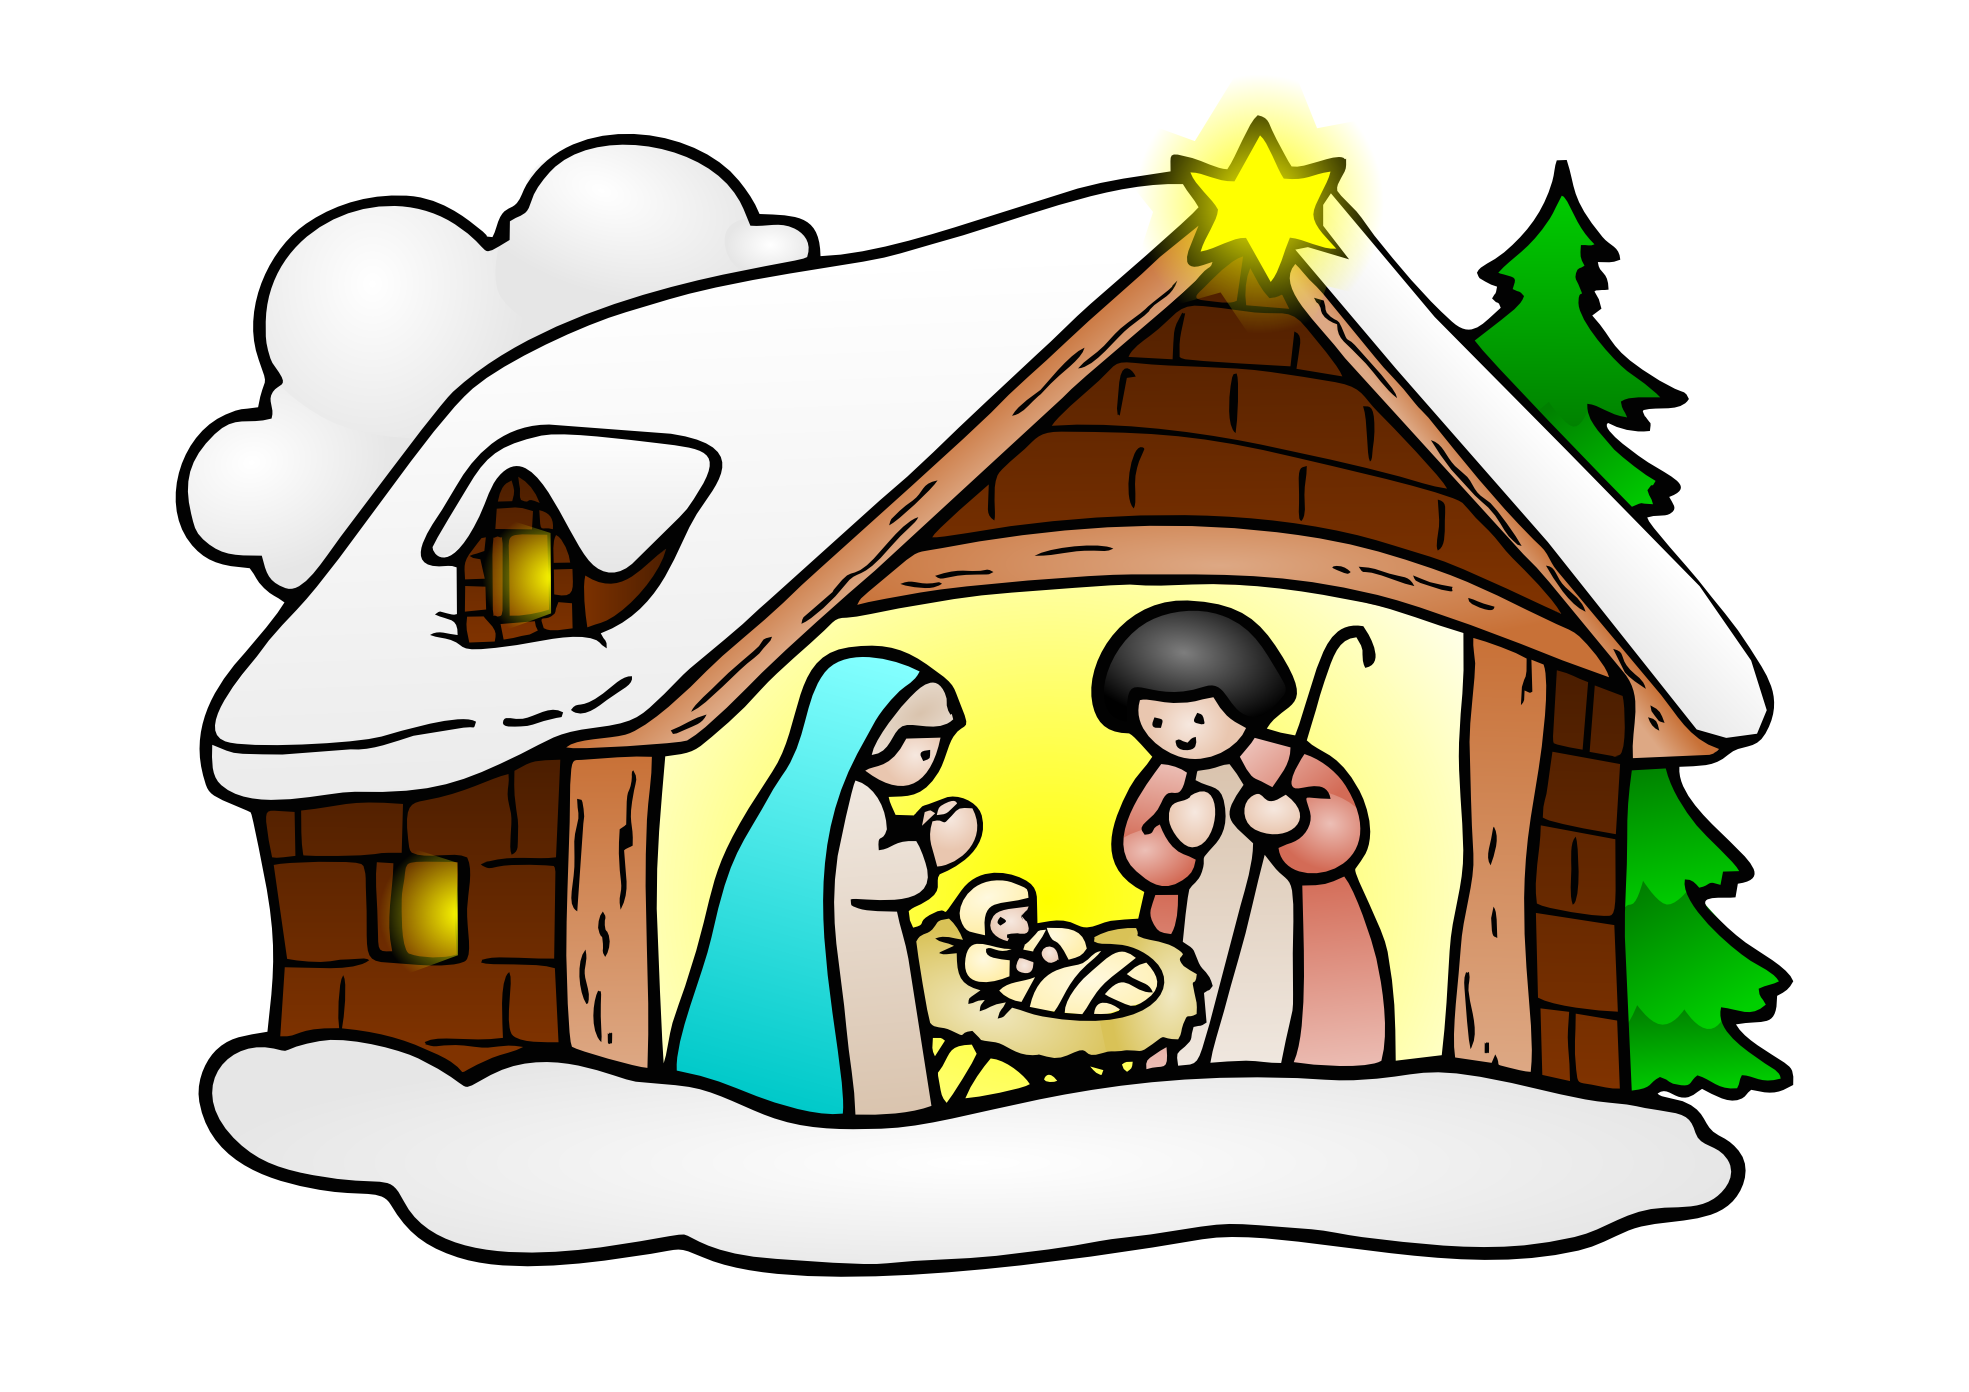 hight resolution of images for baby jesus png